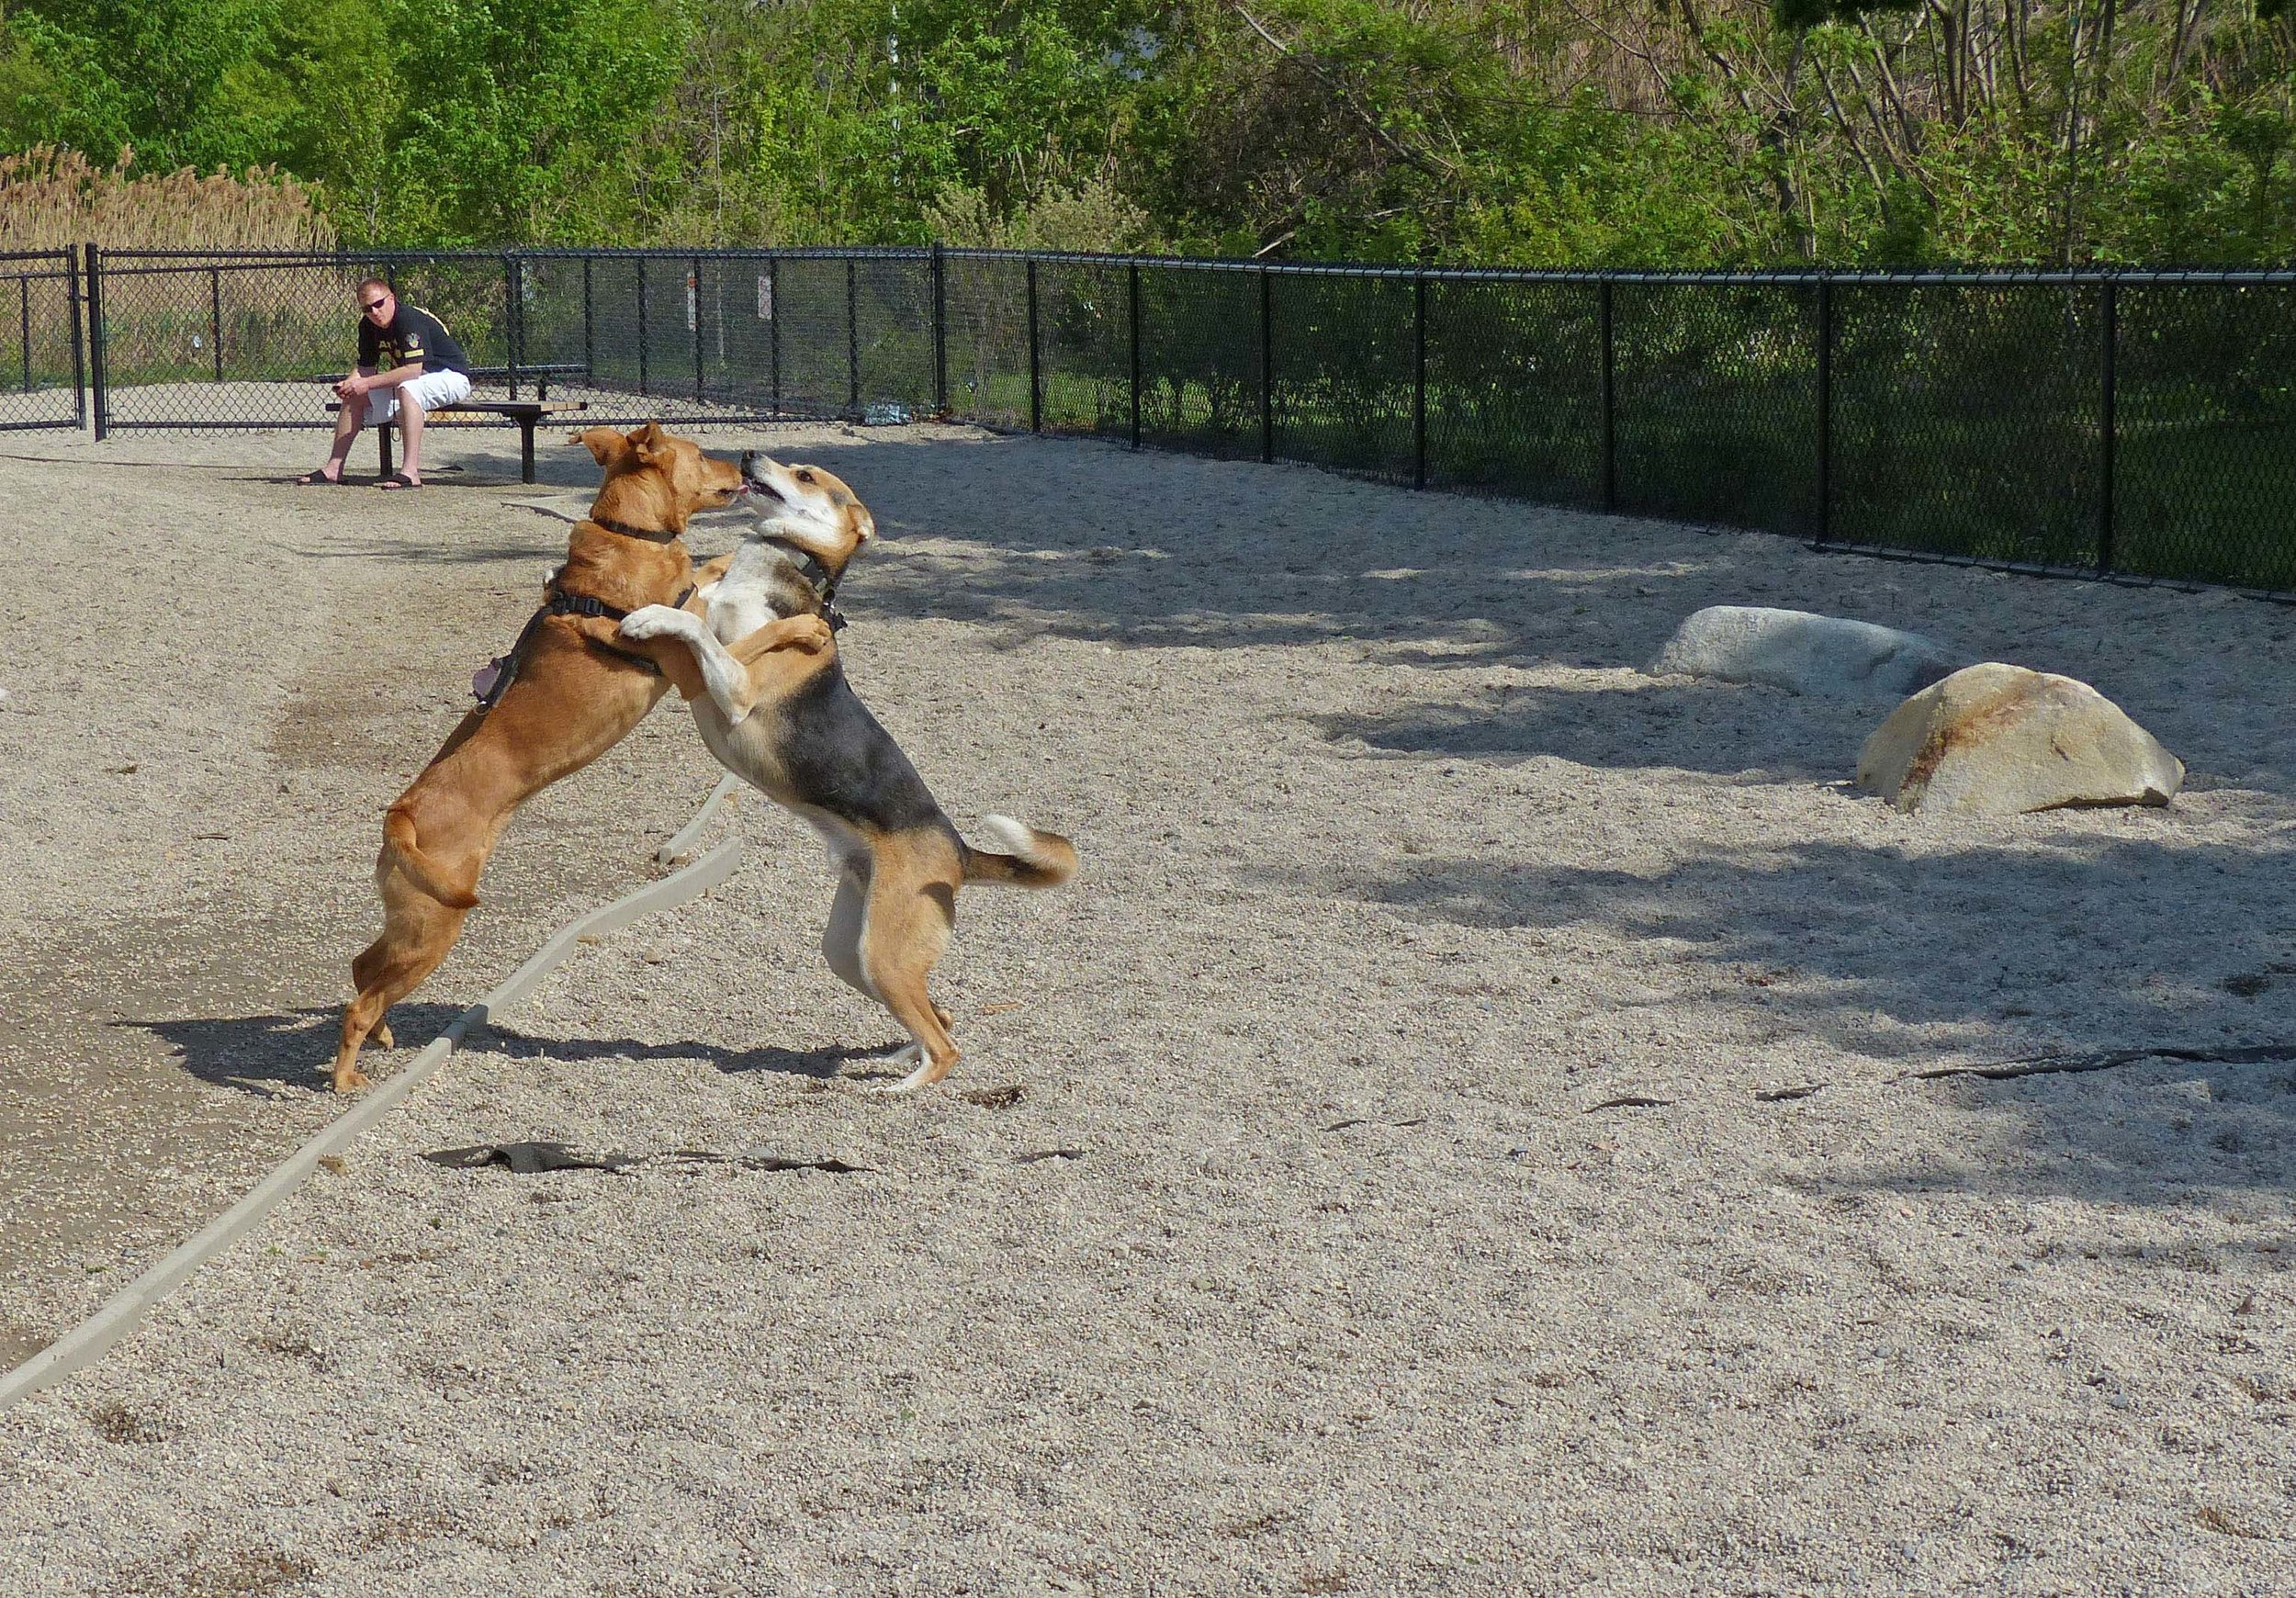 Dogs playing at the off-leash recreation area at Thorndike Field & Magnolia Park